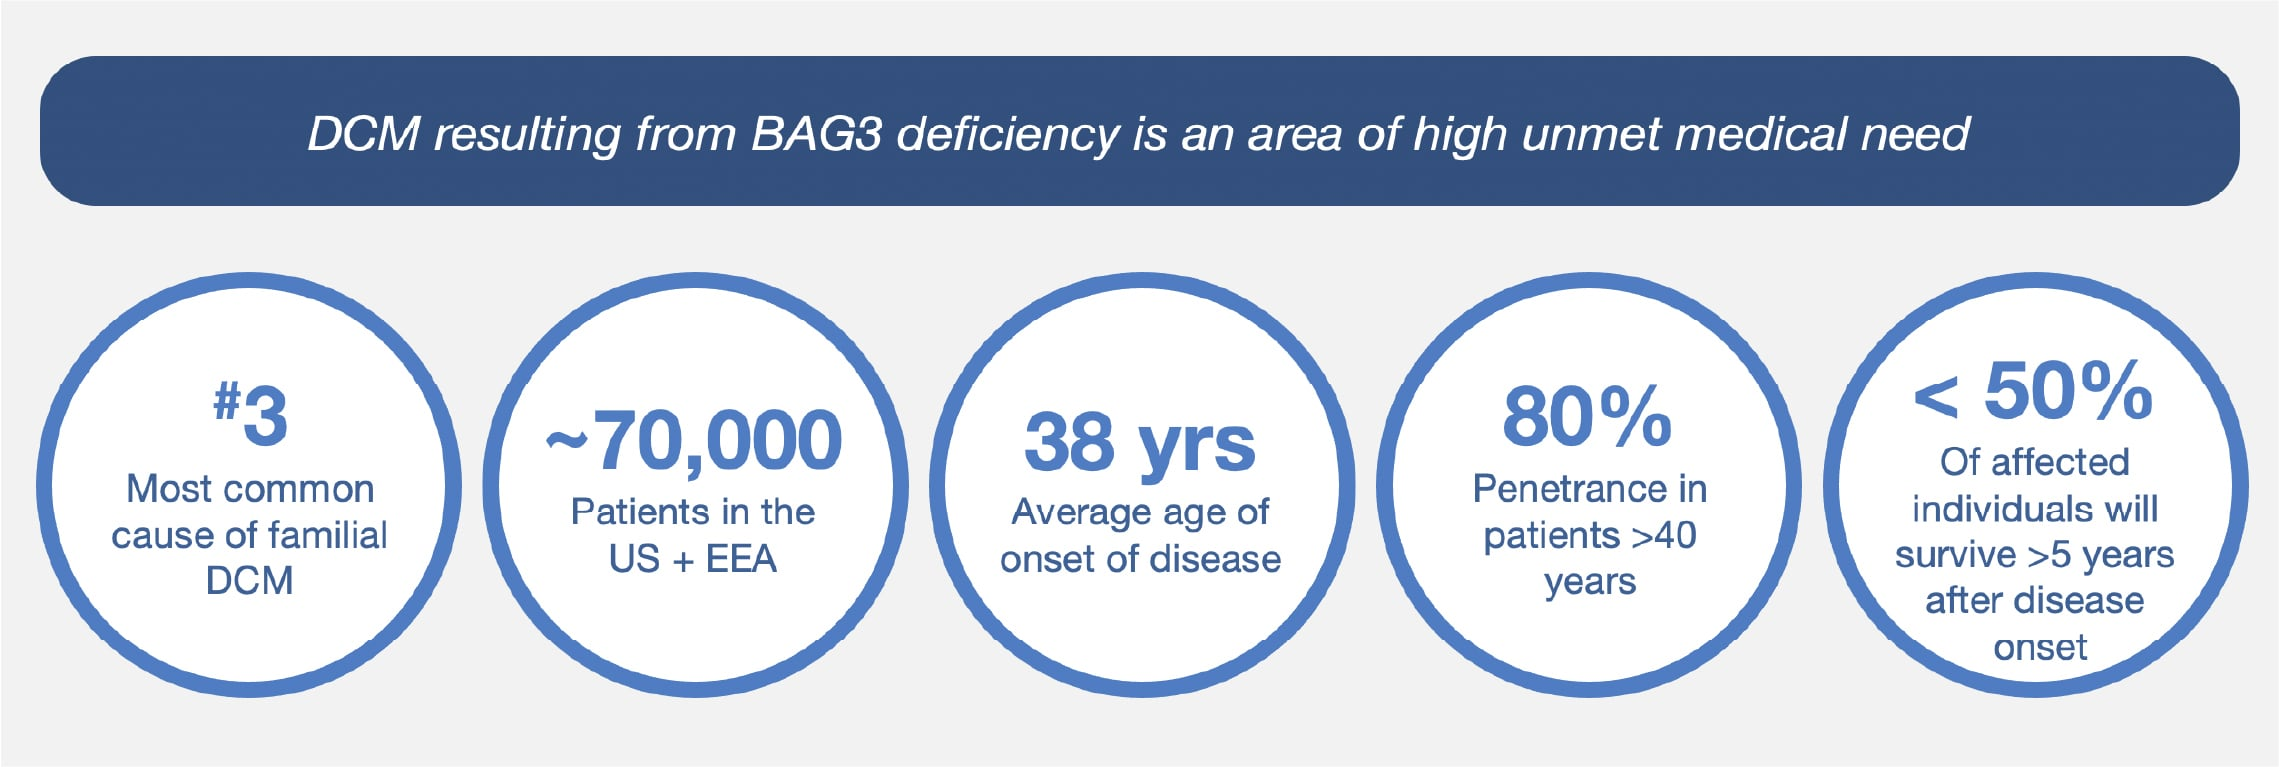 DCM resulting from BAG3 deficiency is an area of high unmet medical need